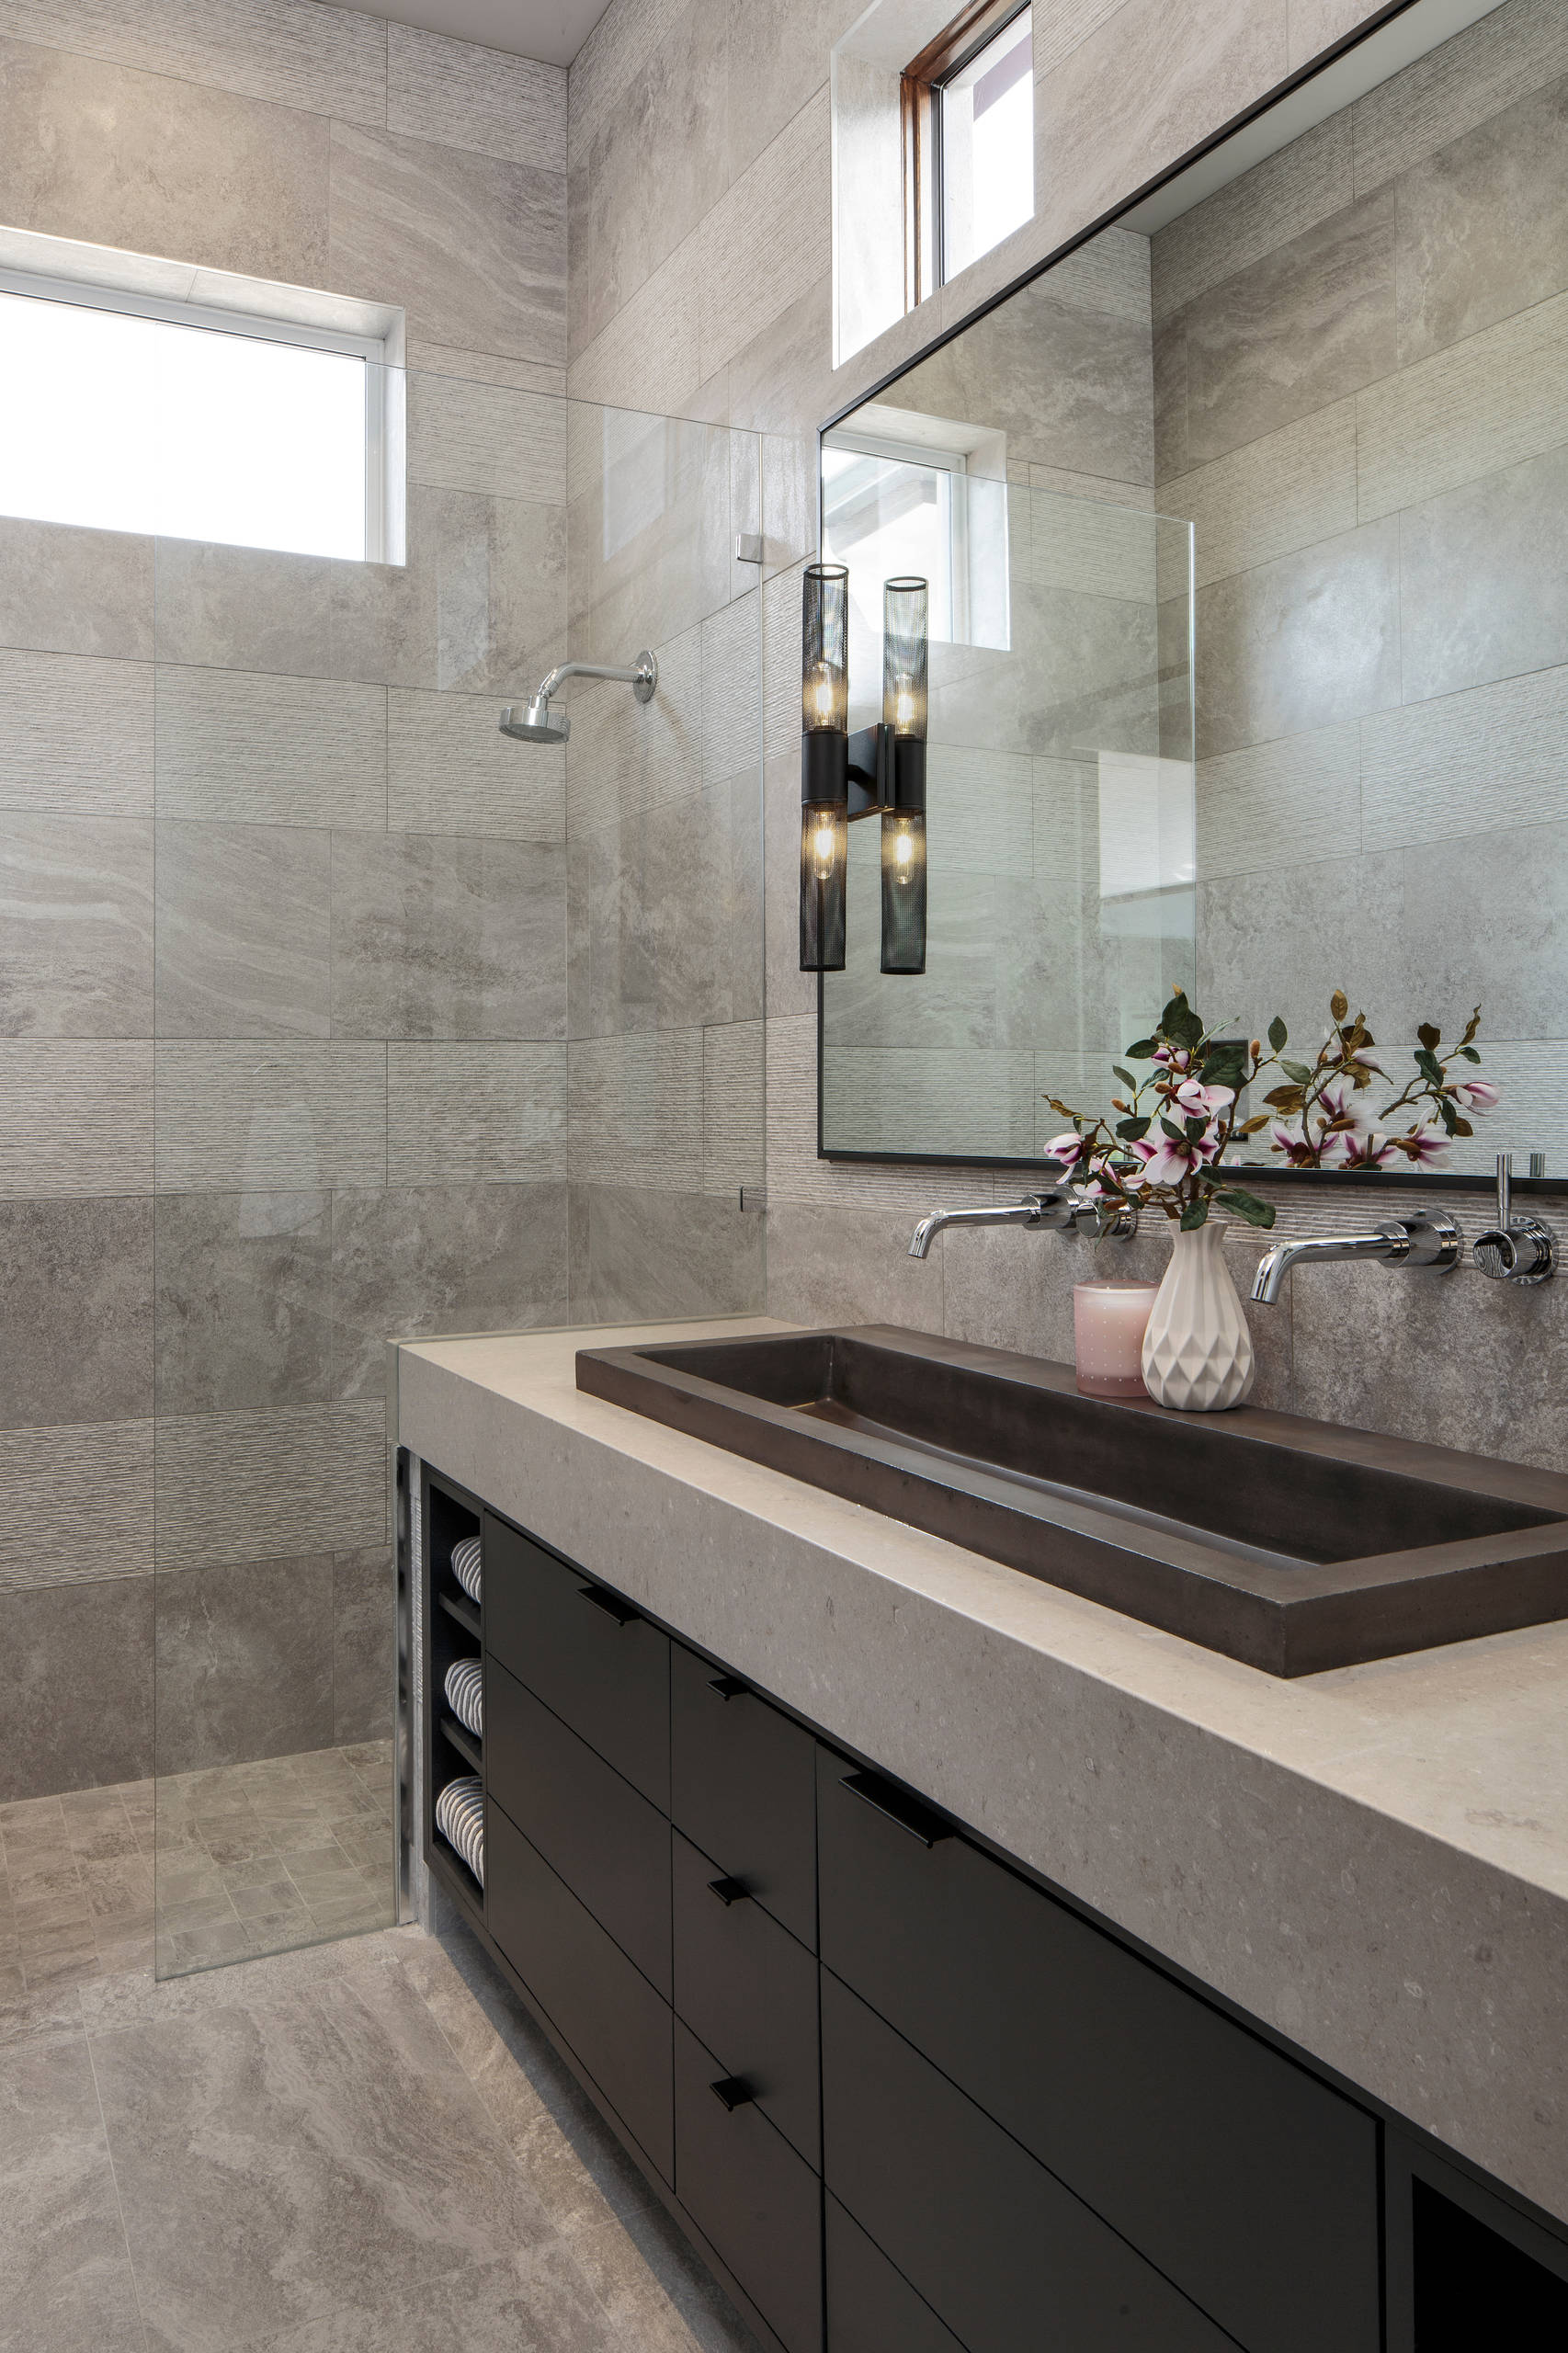 5 Beautiful Modern Bathroom Pictures & Ideas - November, 5  Houzz